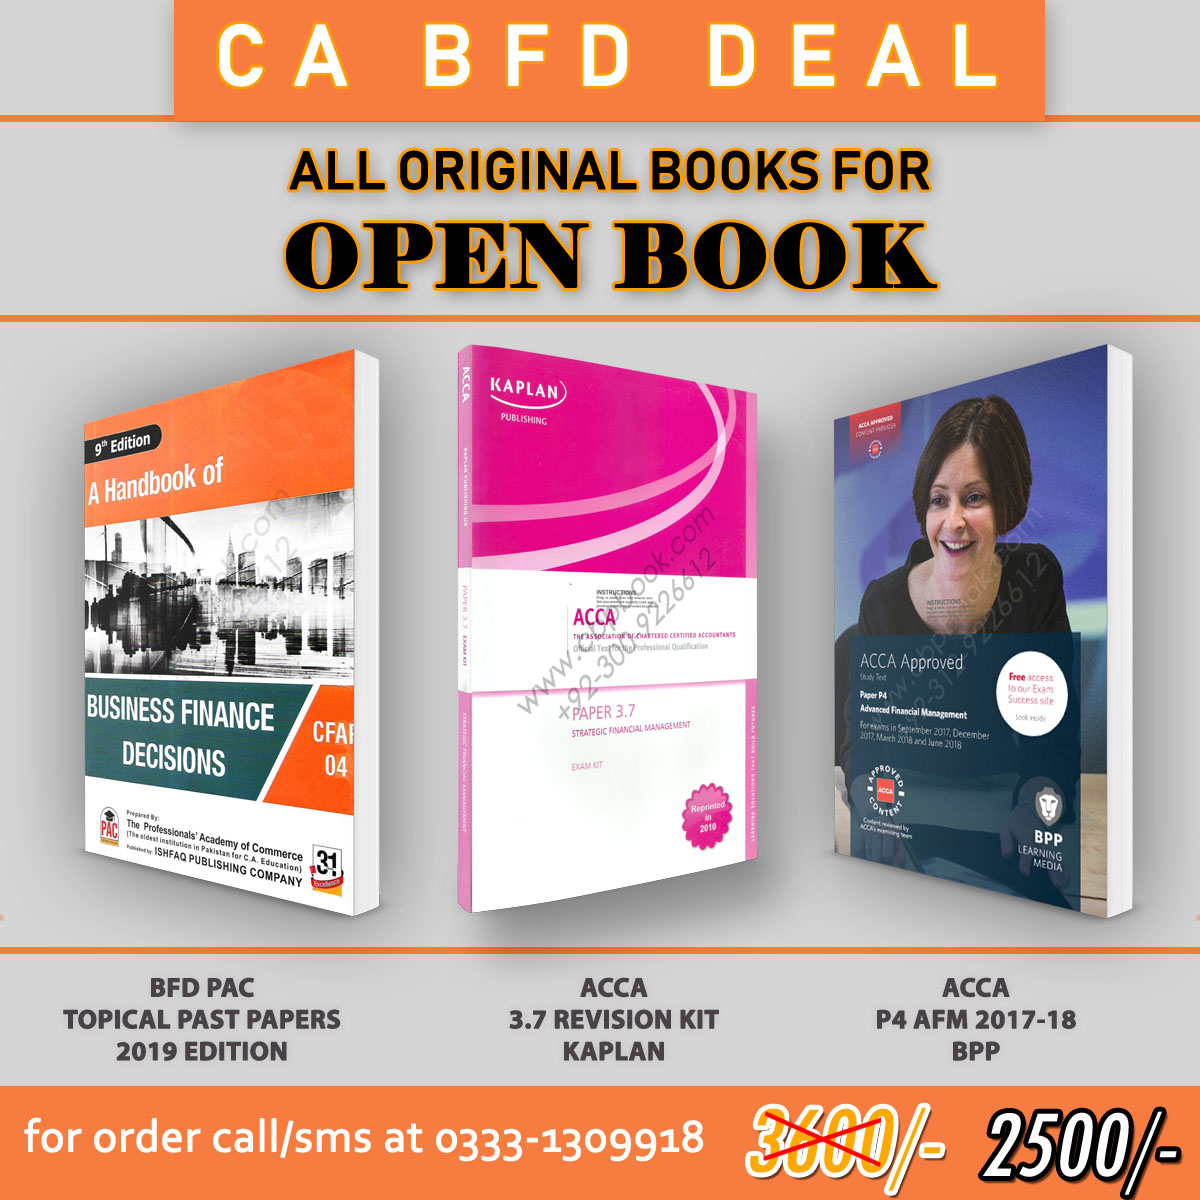 CA CFAP-4 BFD DEAL (BFD PAC/ACCA P4/3 7 KIT) All Original Books For Open  Book